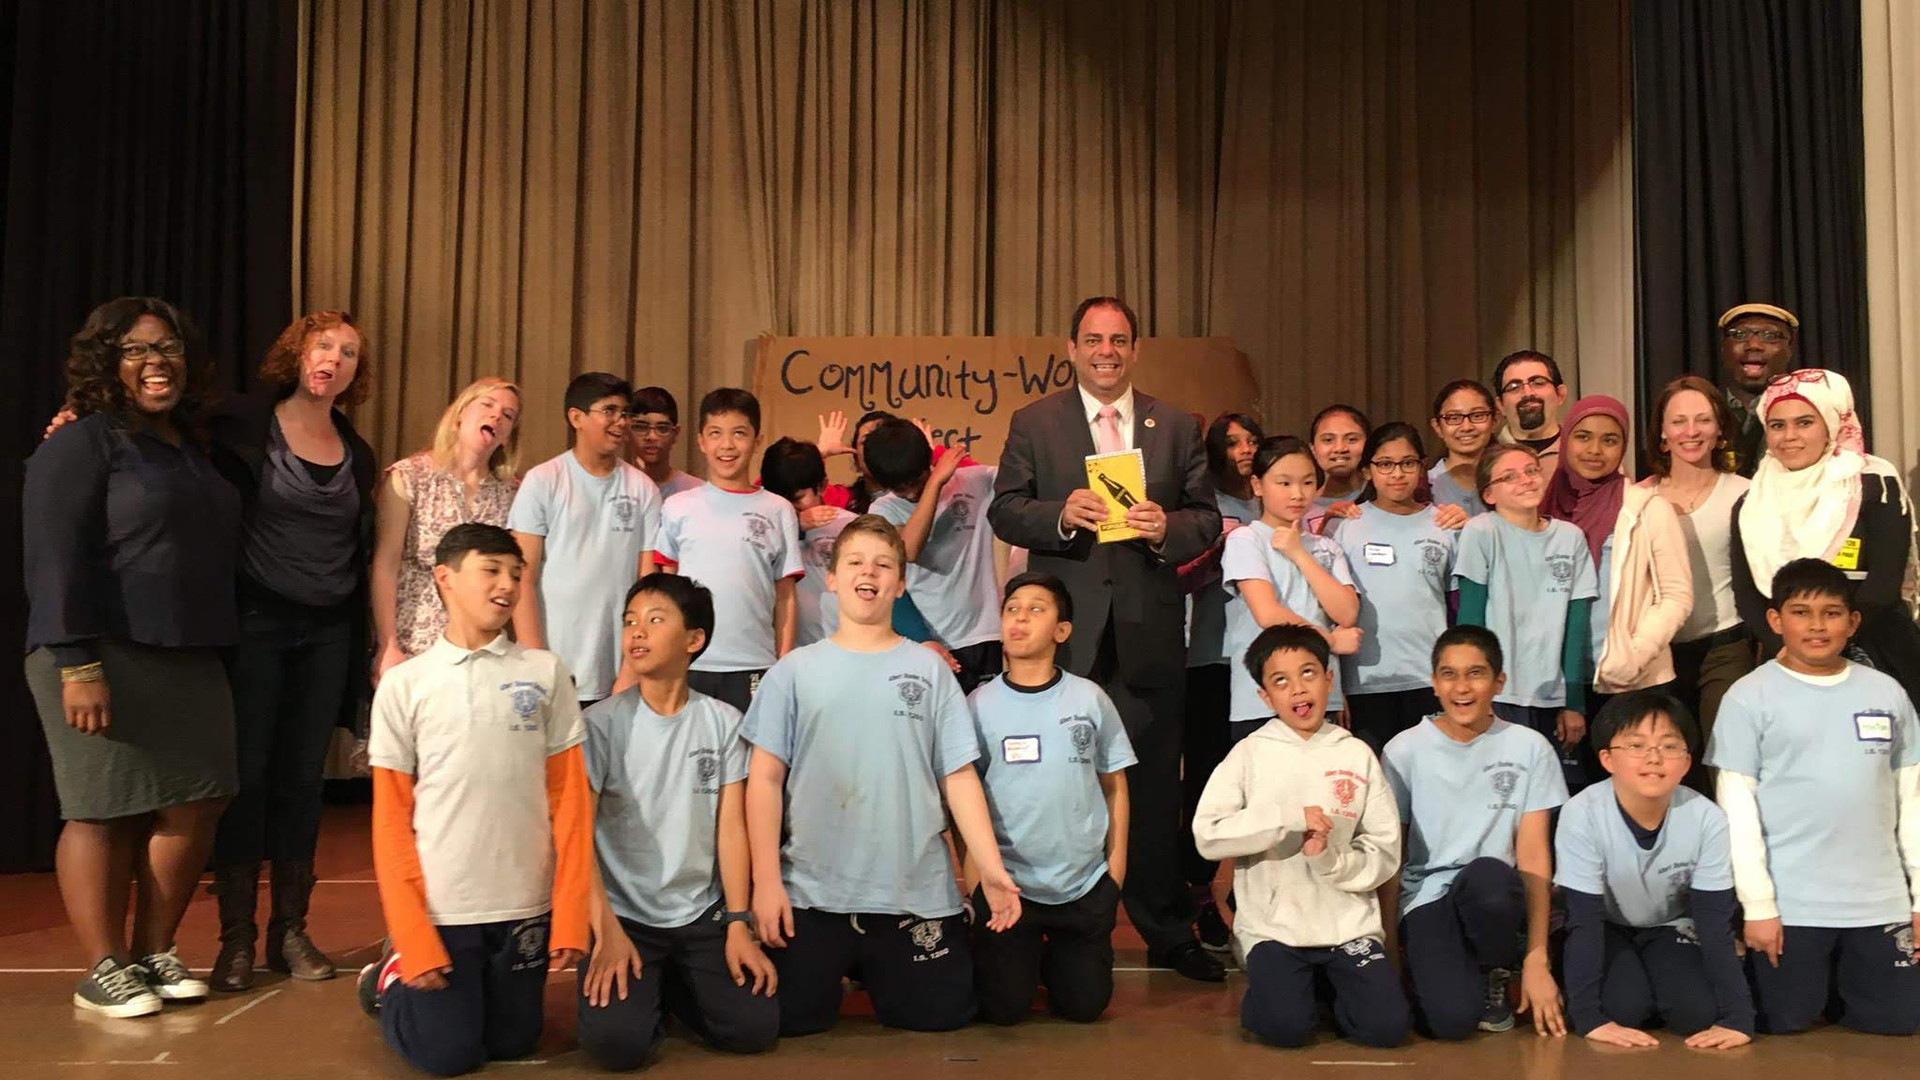 End of residency CWP performance with Councilman Costa Constantinides